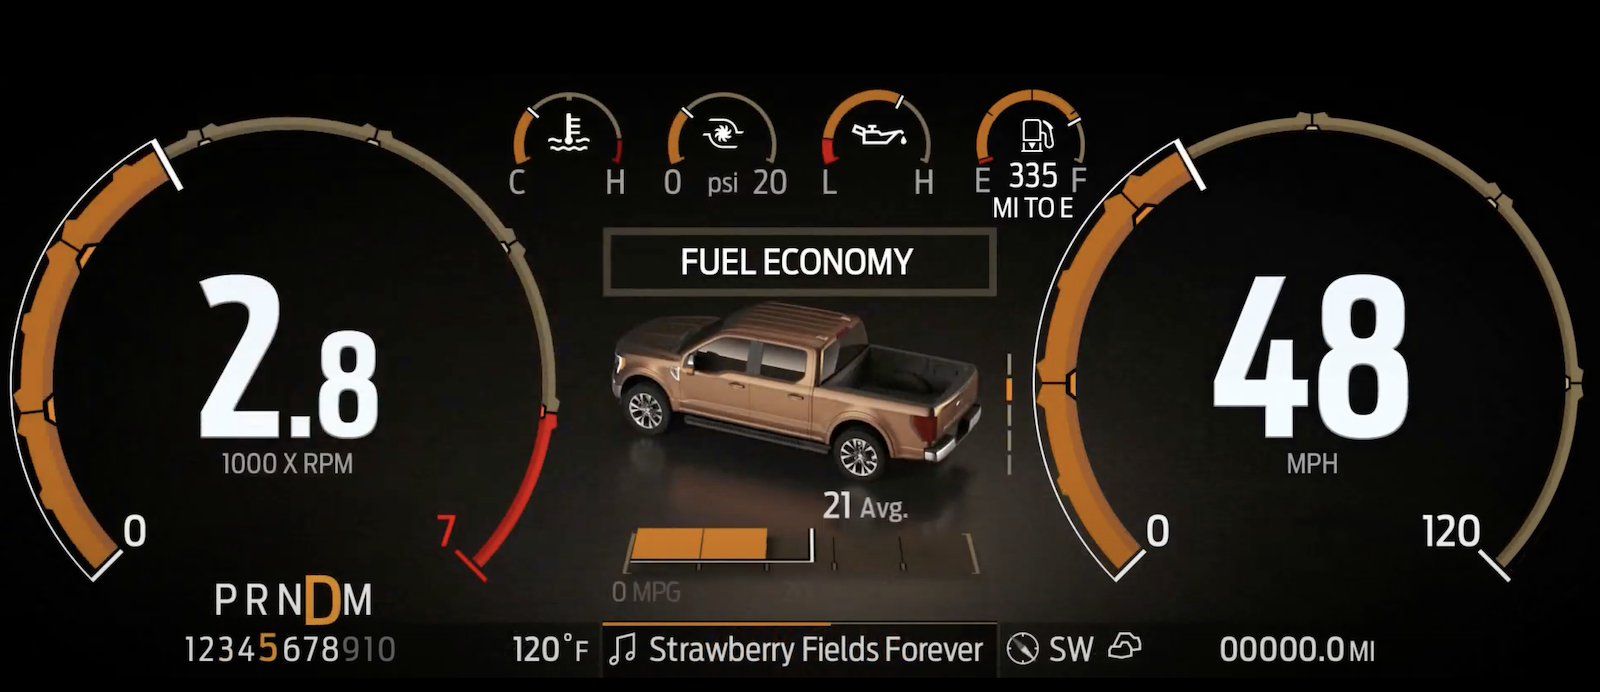 2021 Ford F-150 Digital Gauges Instrument Display 1.png